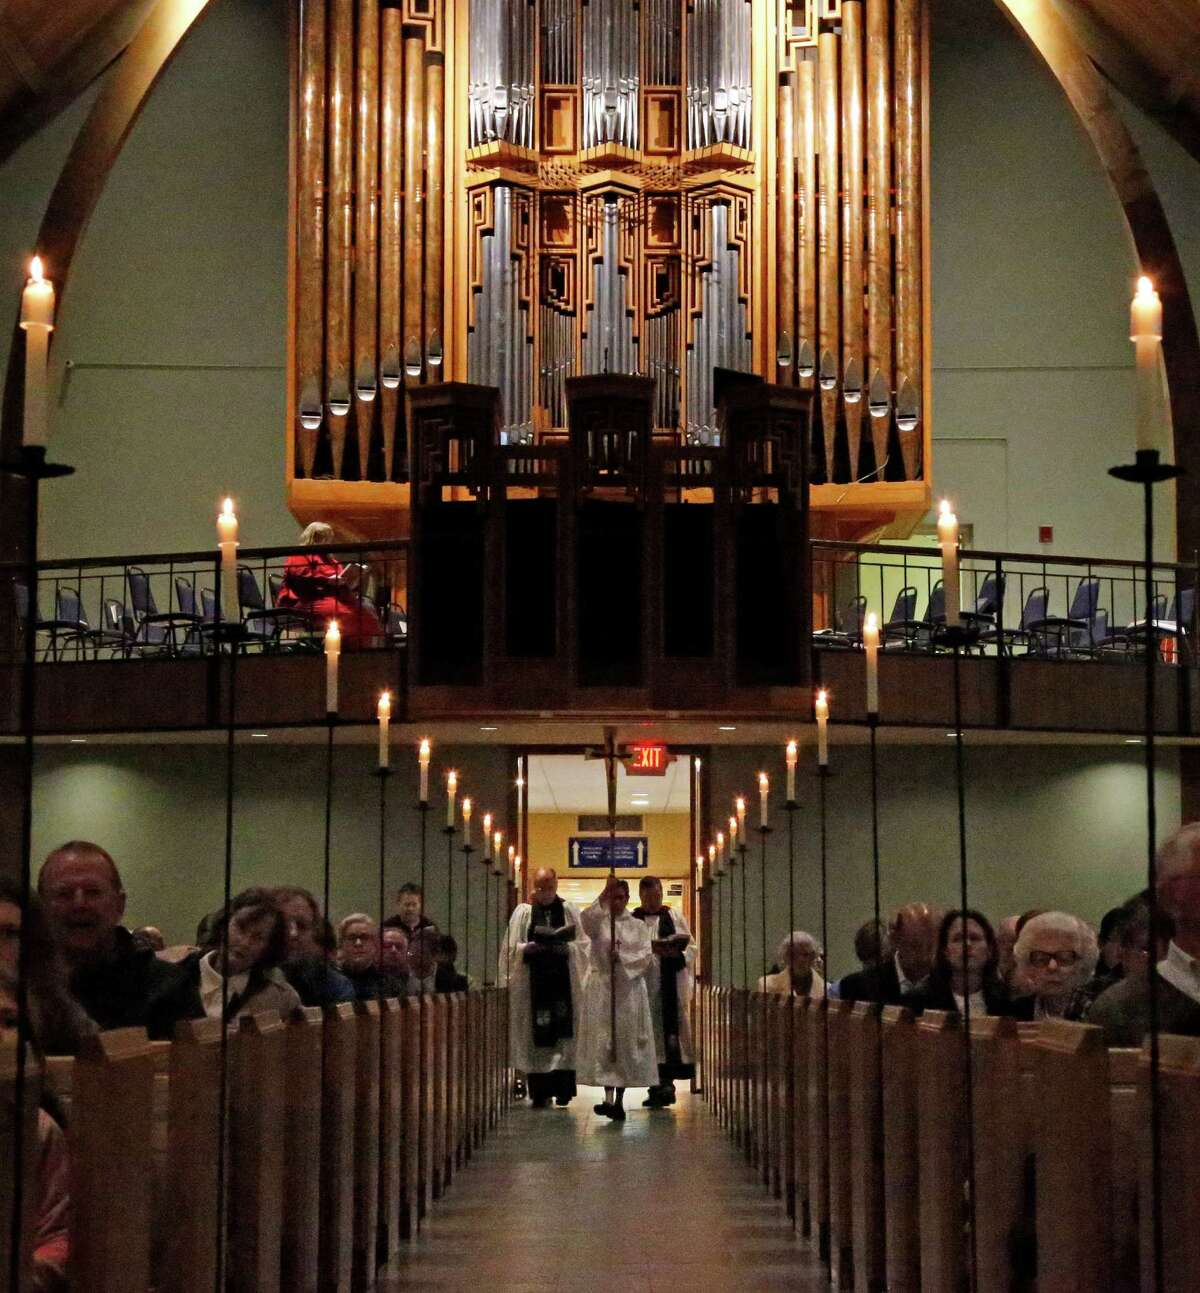 A Silent Procession started the Advent Lessons and Carols Service at St. Luke's Episcopal Church on Nov. 29, days after the K-8 parish school informed parents it would accept and embrace a transitioning transgender student.